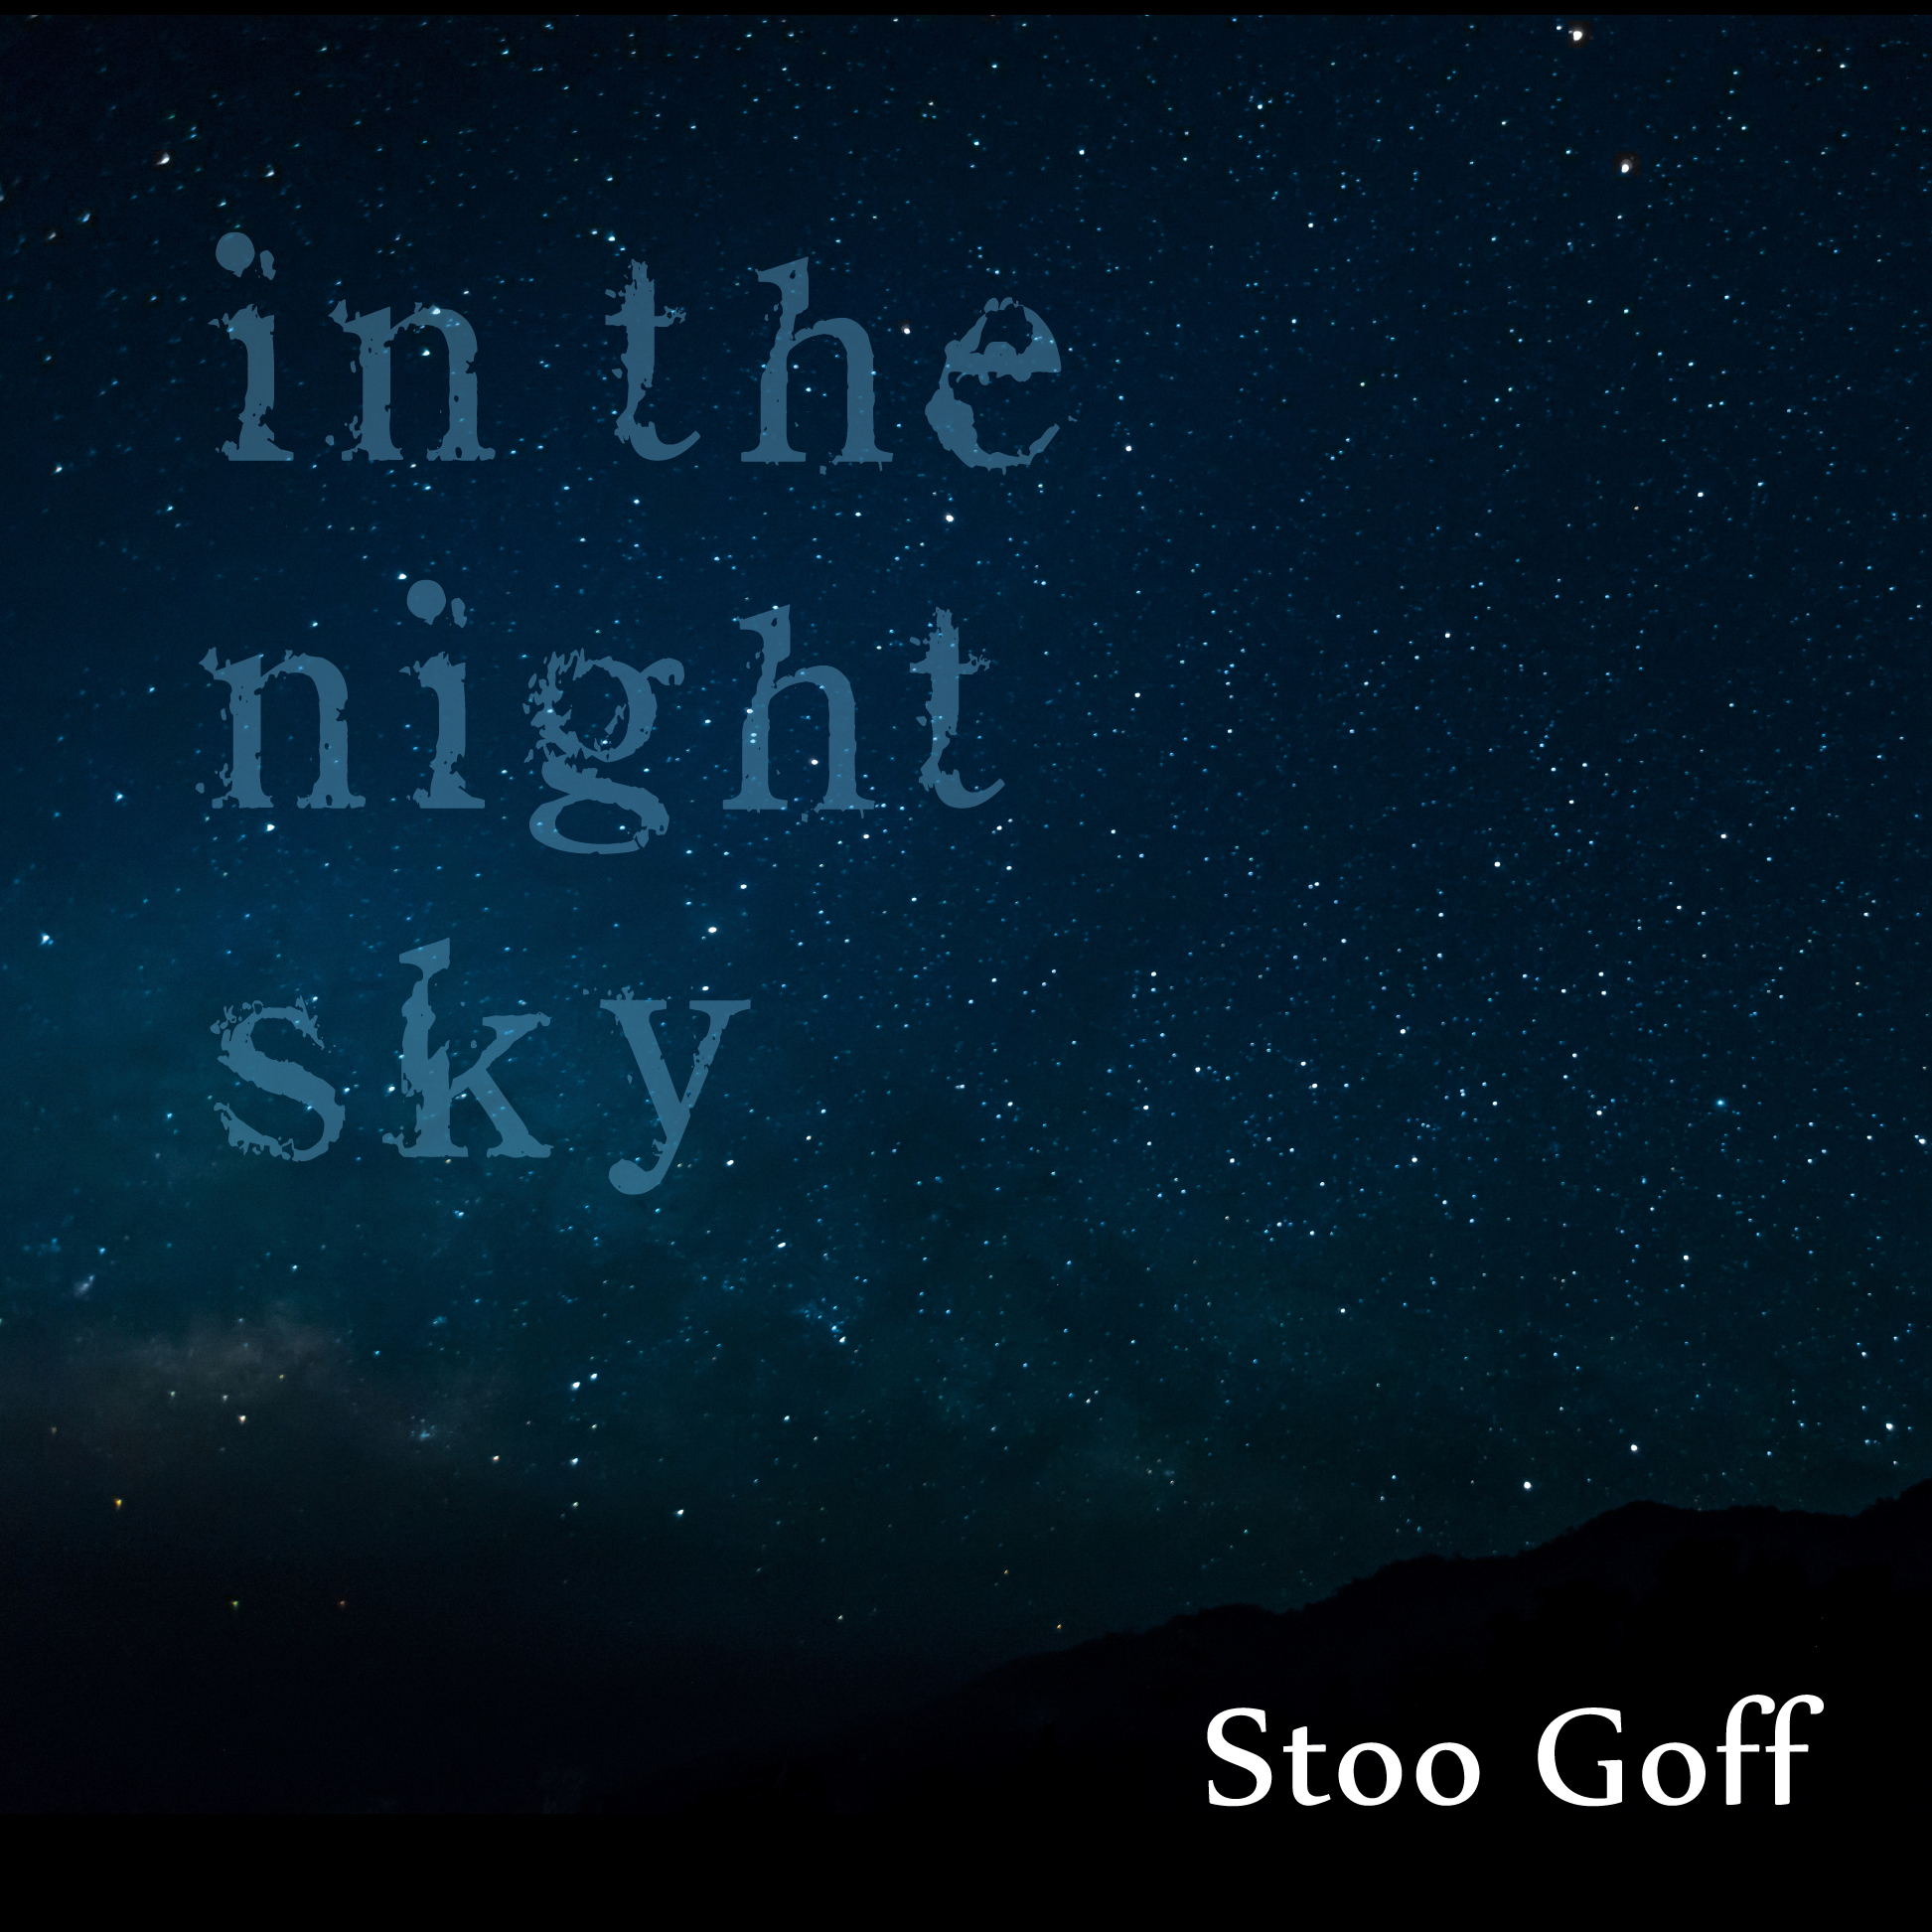 In the Night Sky